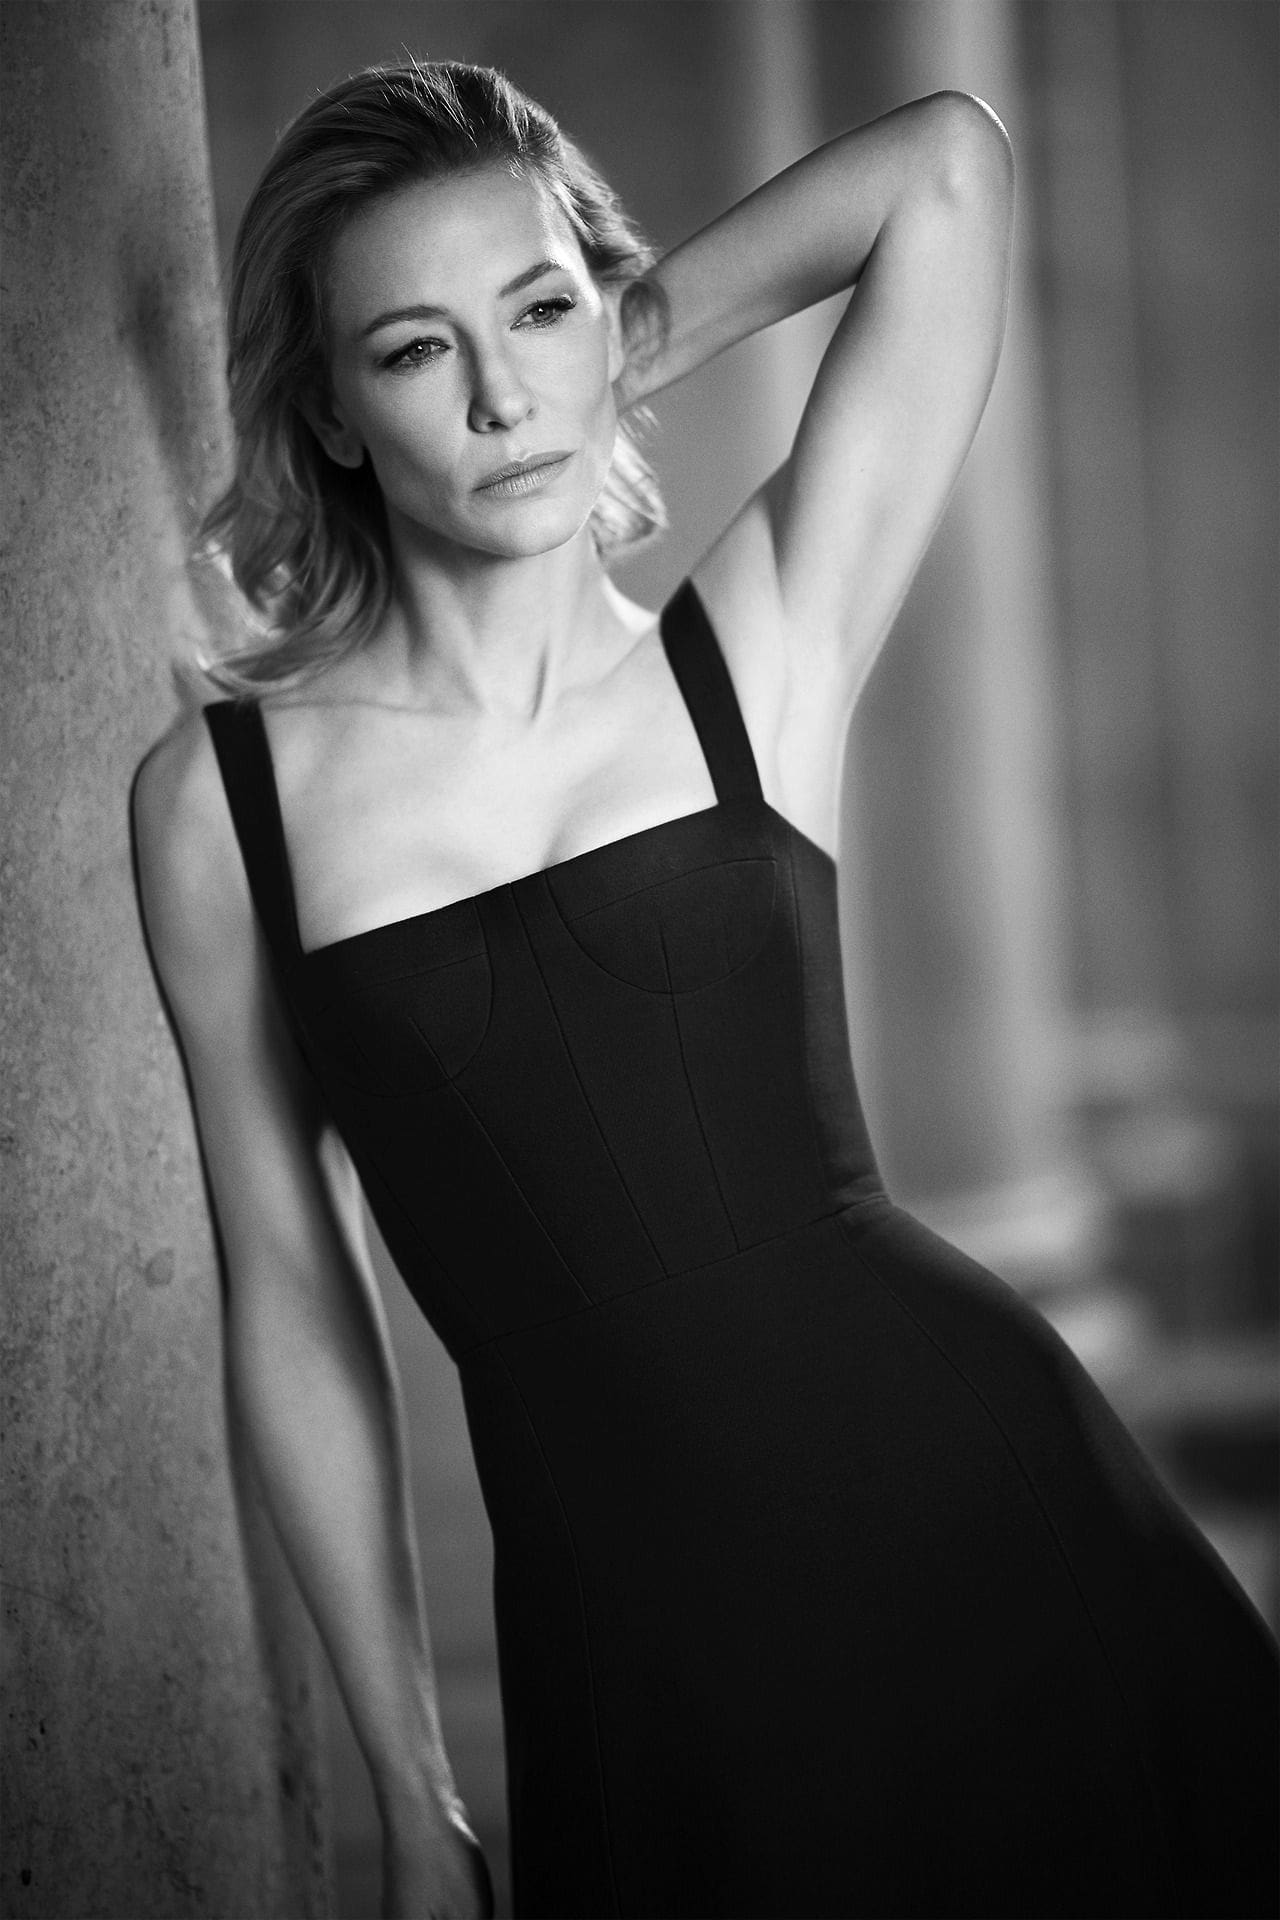 Young Cate Blanchett nude (39 photos), Topless, Paparazzi, Feet, cameltoe 2015